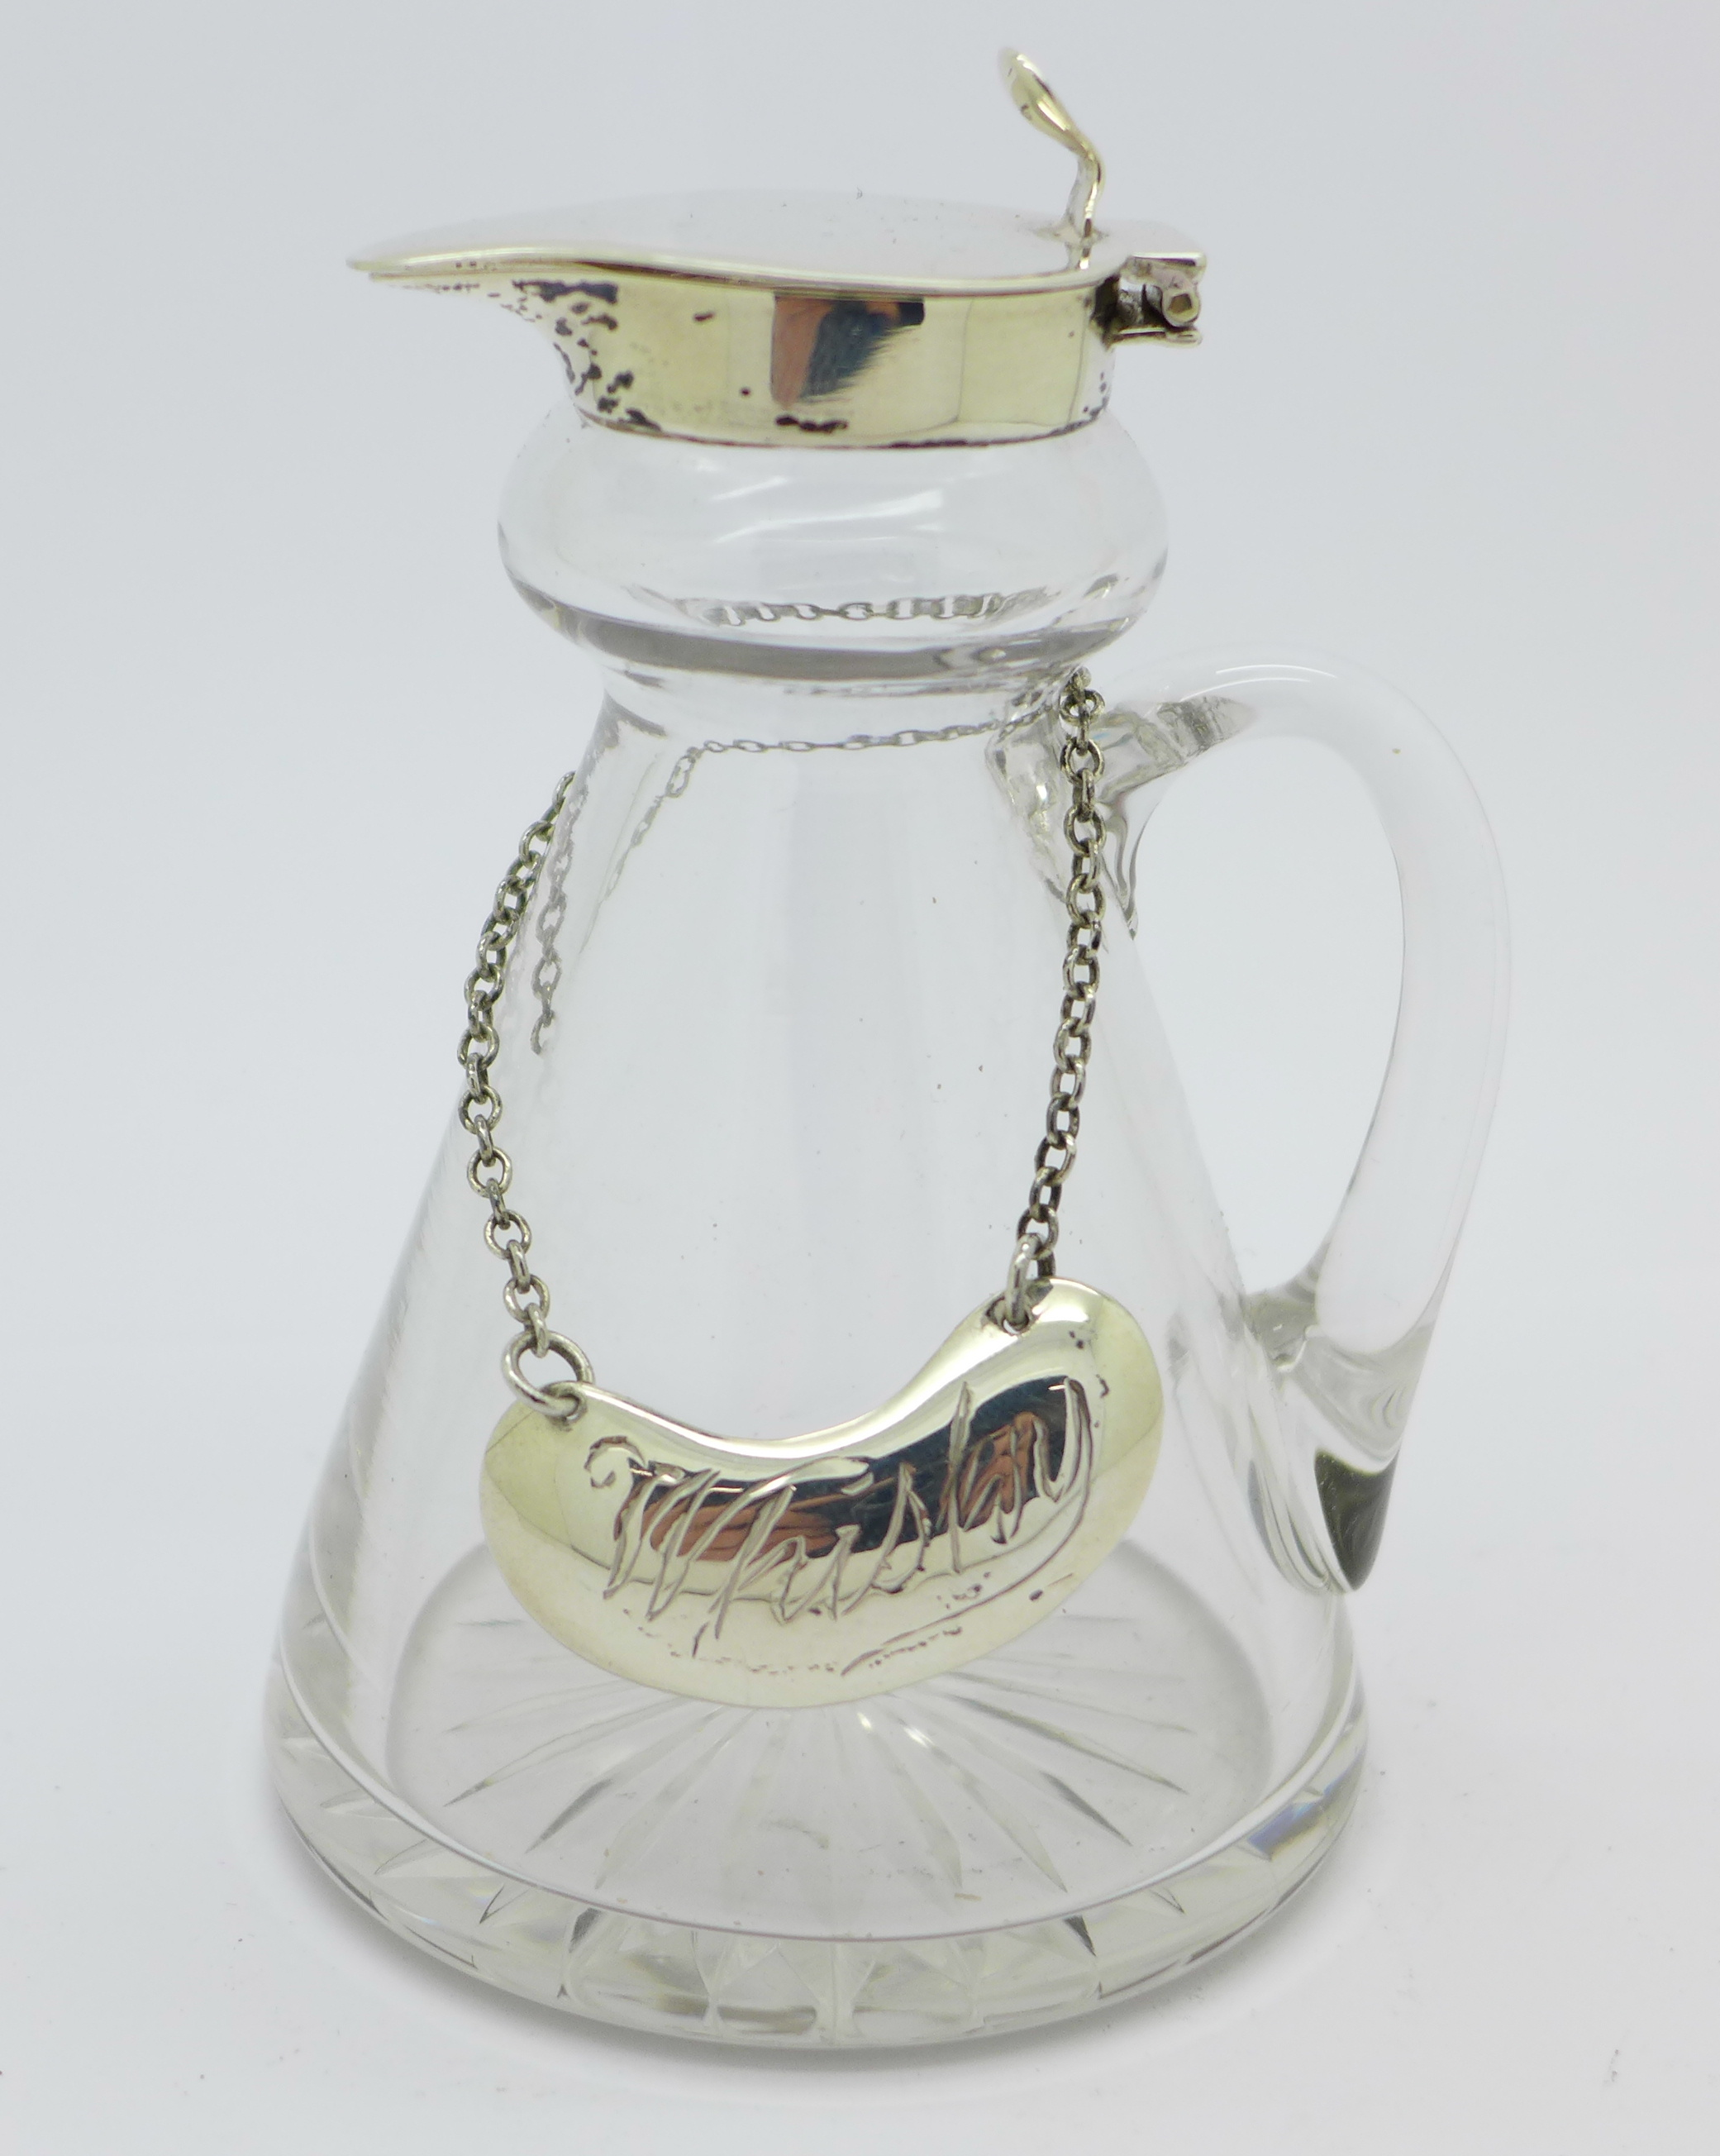 A silver and glass whisky noggin with silver label